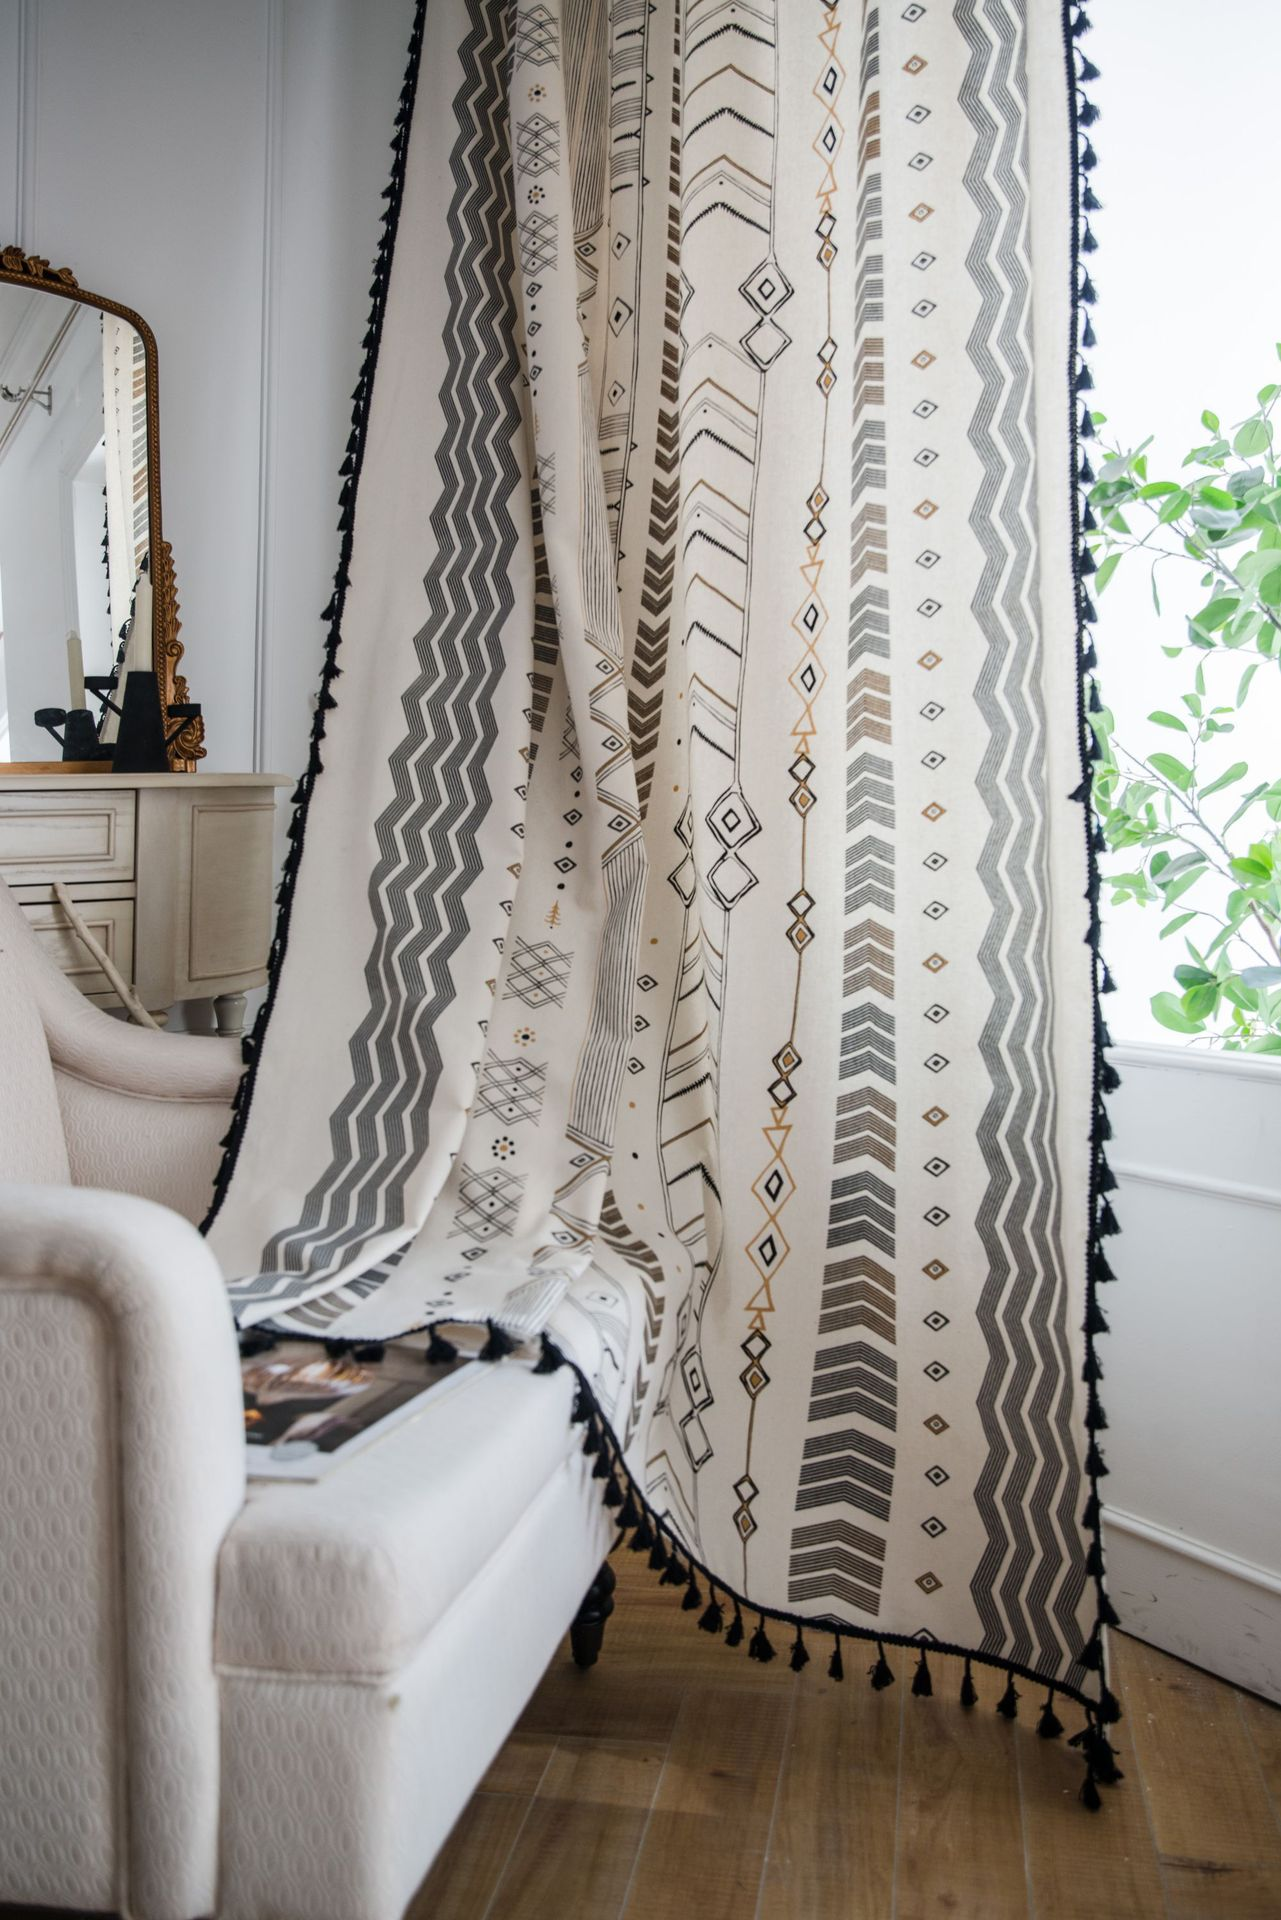 Curtain With Tassel For Living Room French Window Blinds Bedroom Bay Window Cotton Finished Curtains Bohemian Geometric Style Curtains Aliexpress